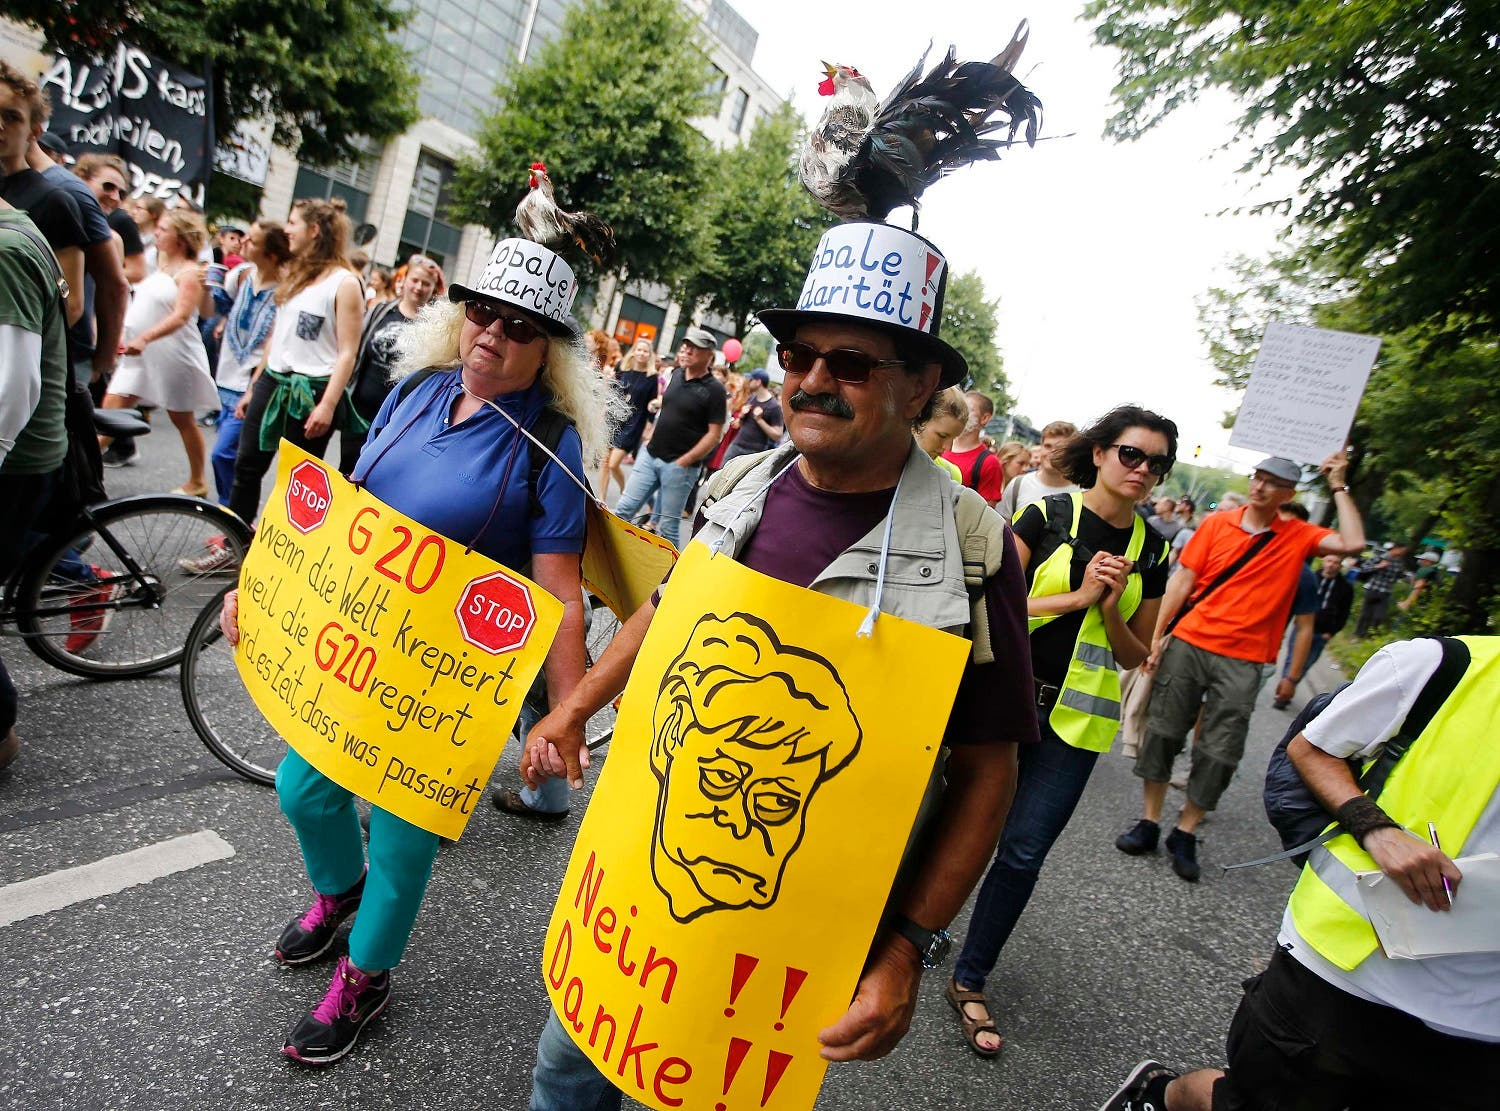 Protesters take part in a demonstration during the G20 summit in Hamburg, on July 8, 2017. (Reuters)